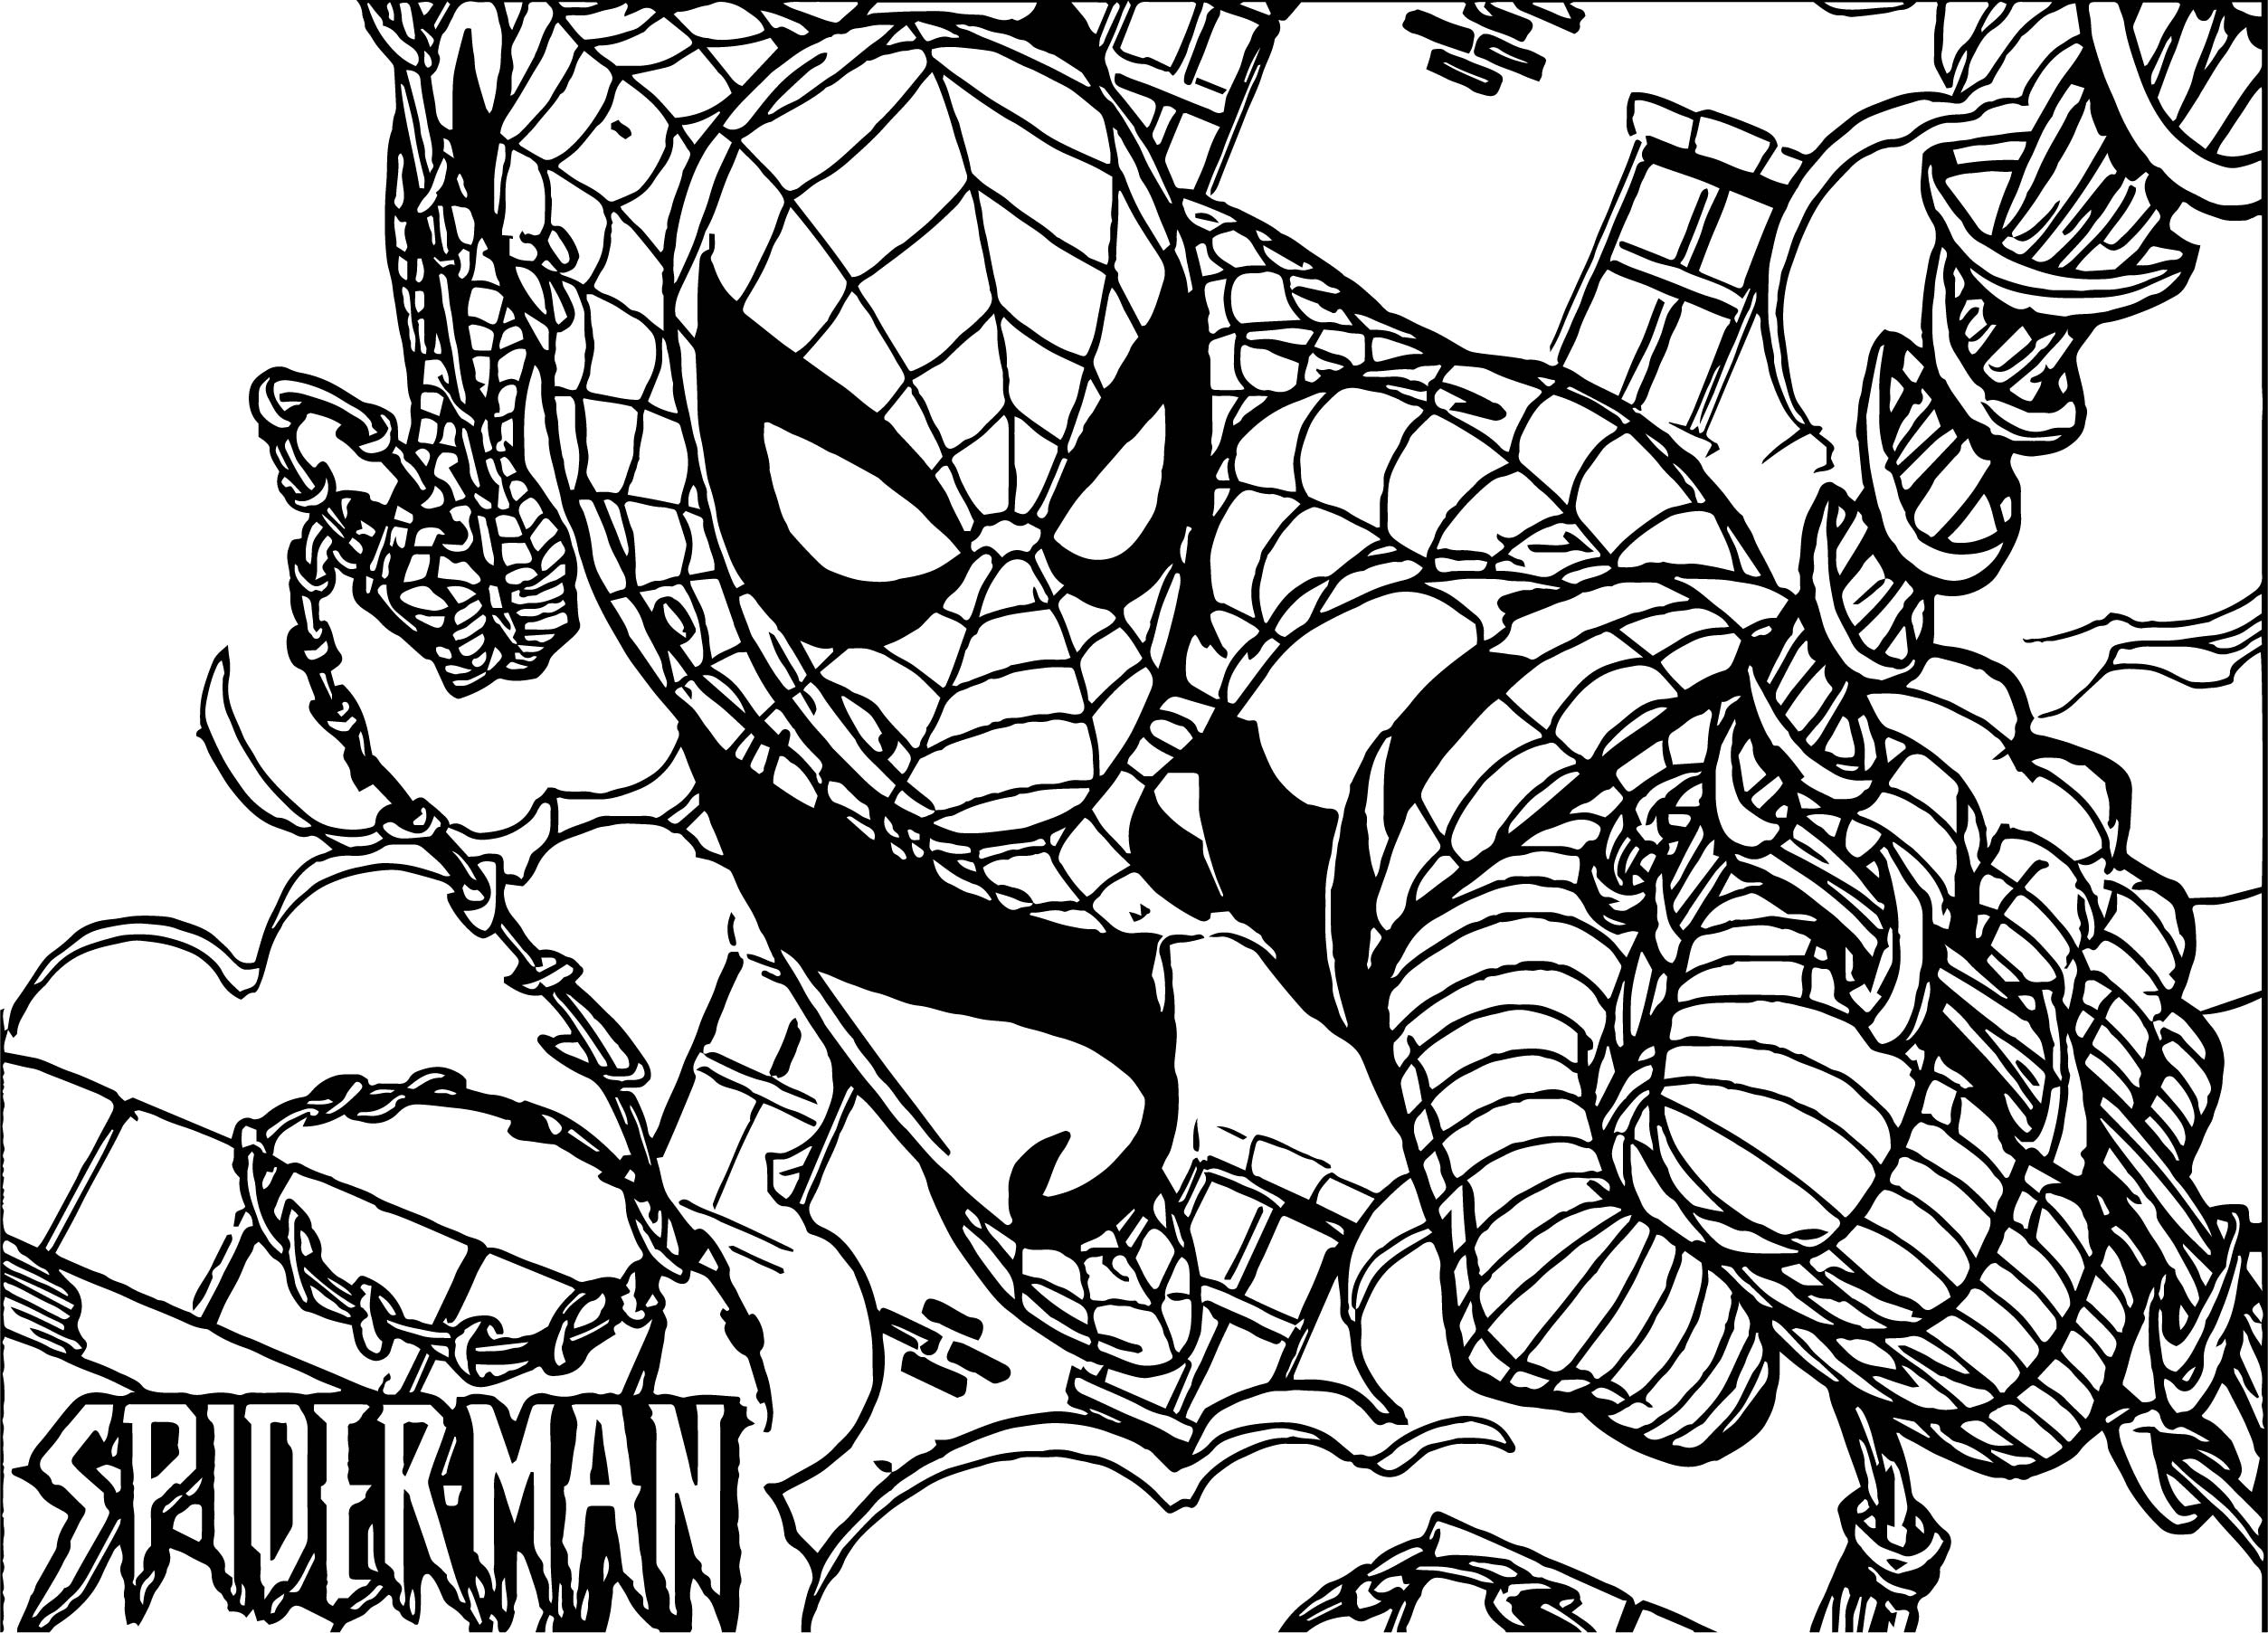 Spiderman Comic Spider Man Coloring Page